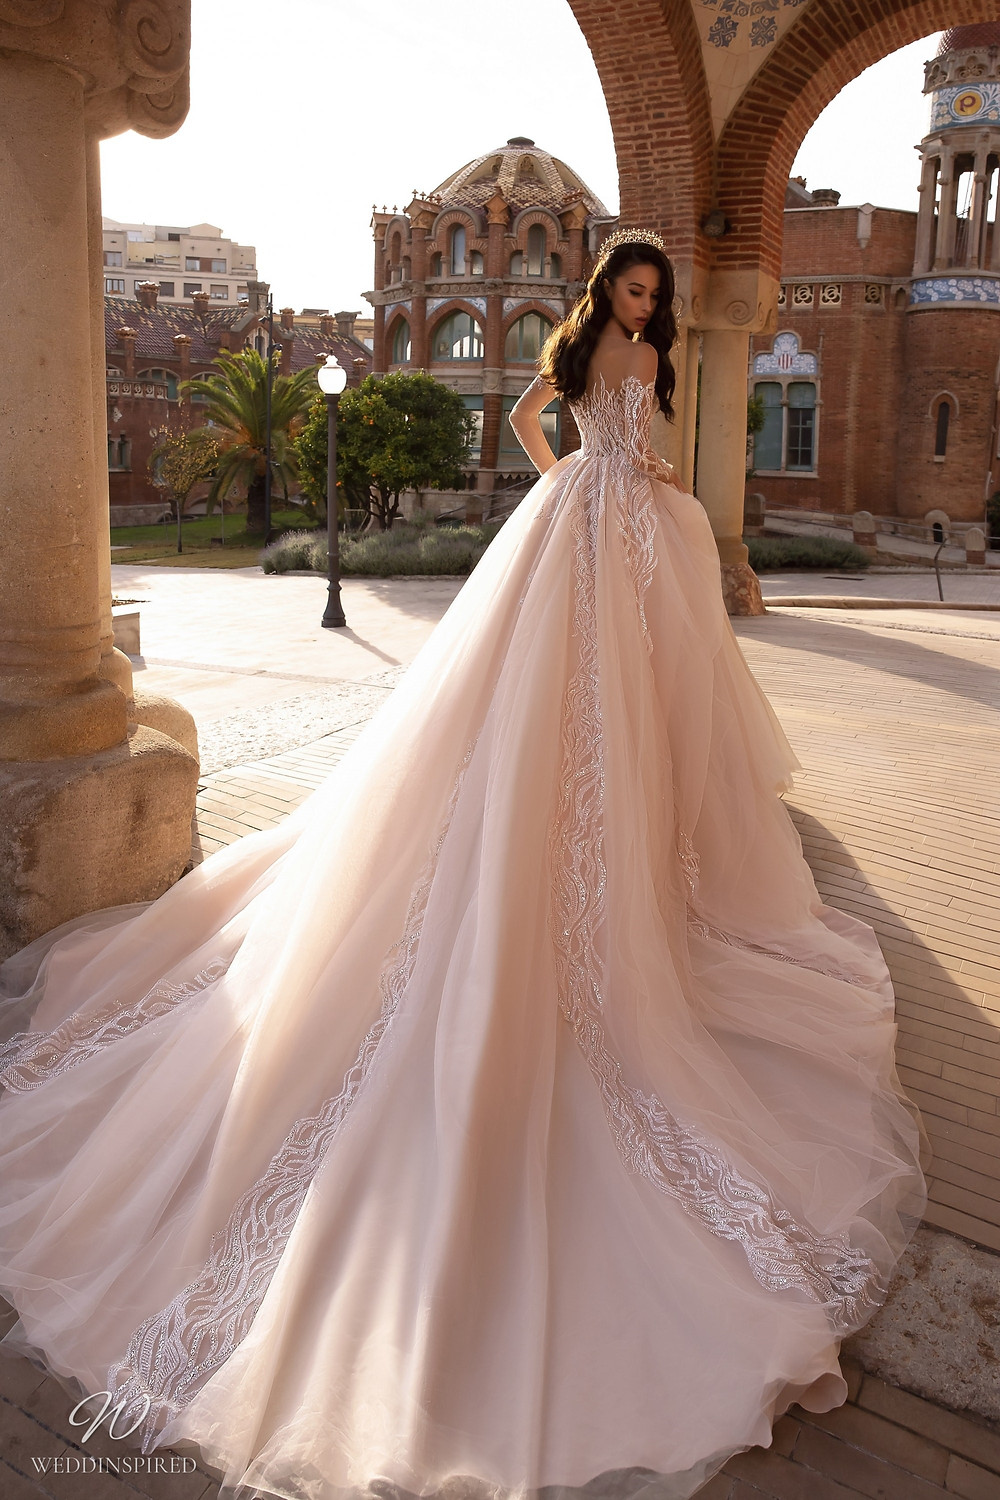 A Maks Mariano blush sparkle tulle princess ball gown wedding dress with illusion top